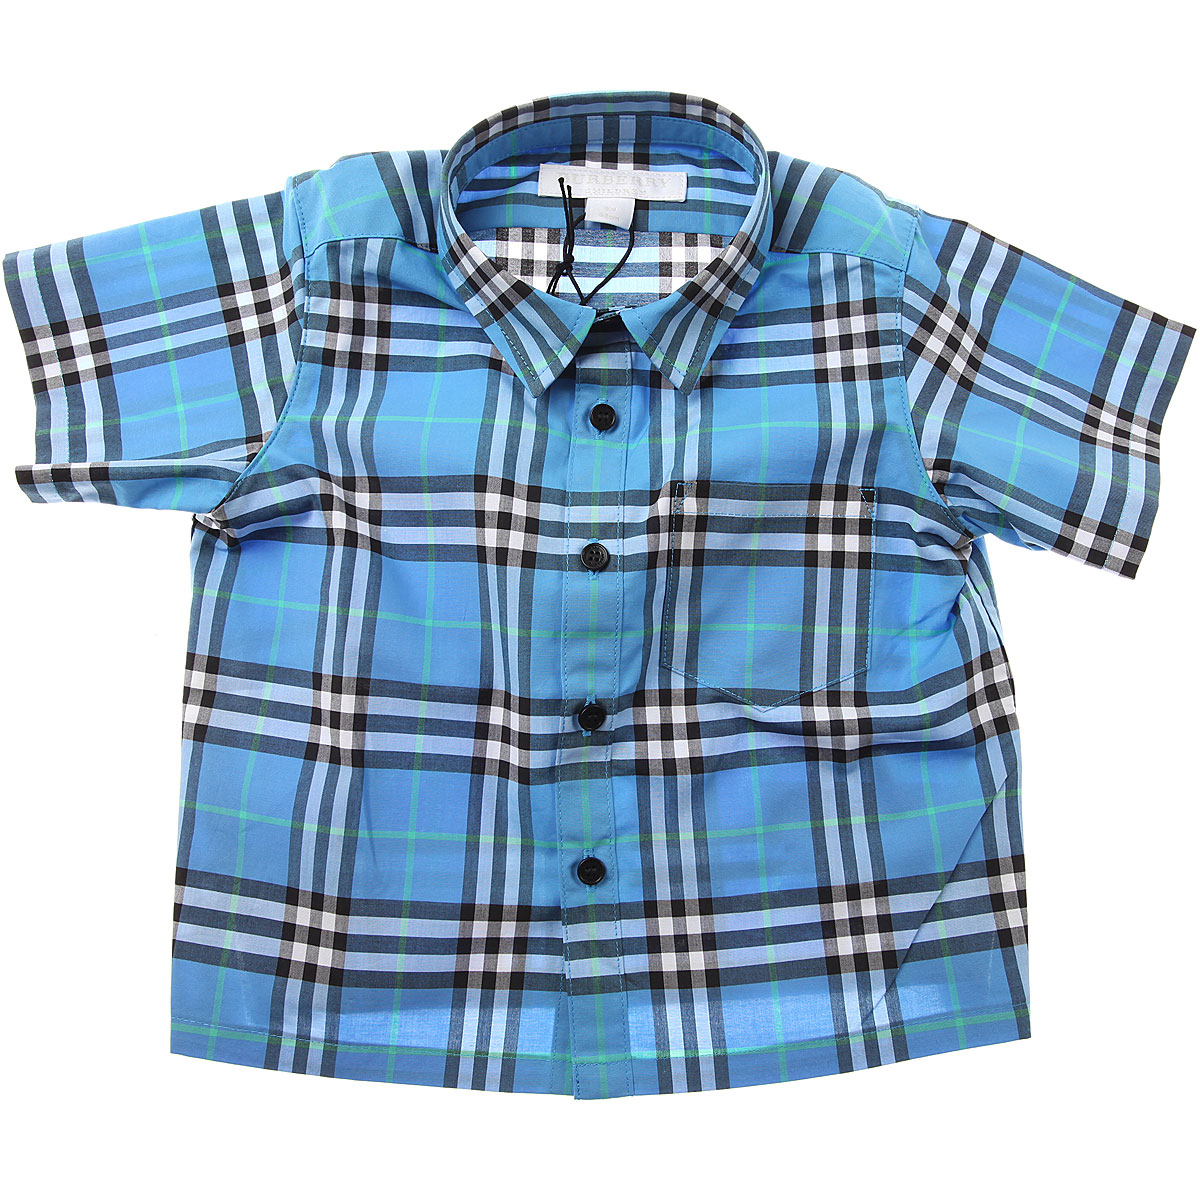 Image of Burberry Baby Shirts for Boys, Azure Blue, Cotton, 2017, 12M 18M 2Y 3Y 6M